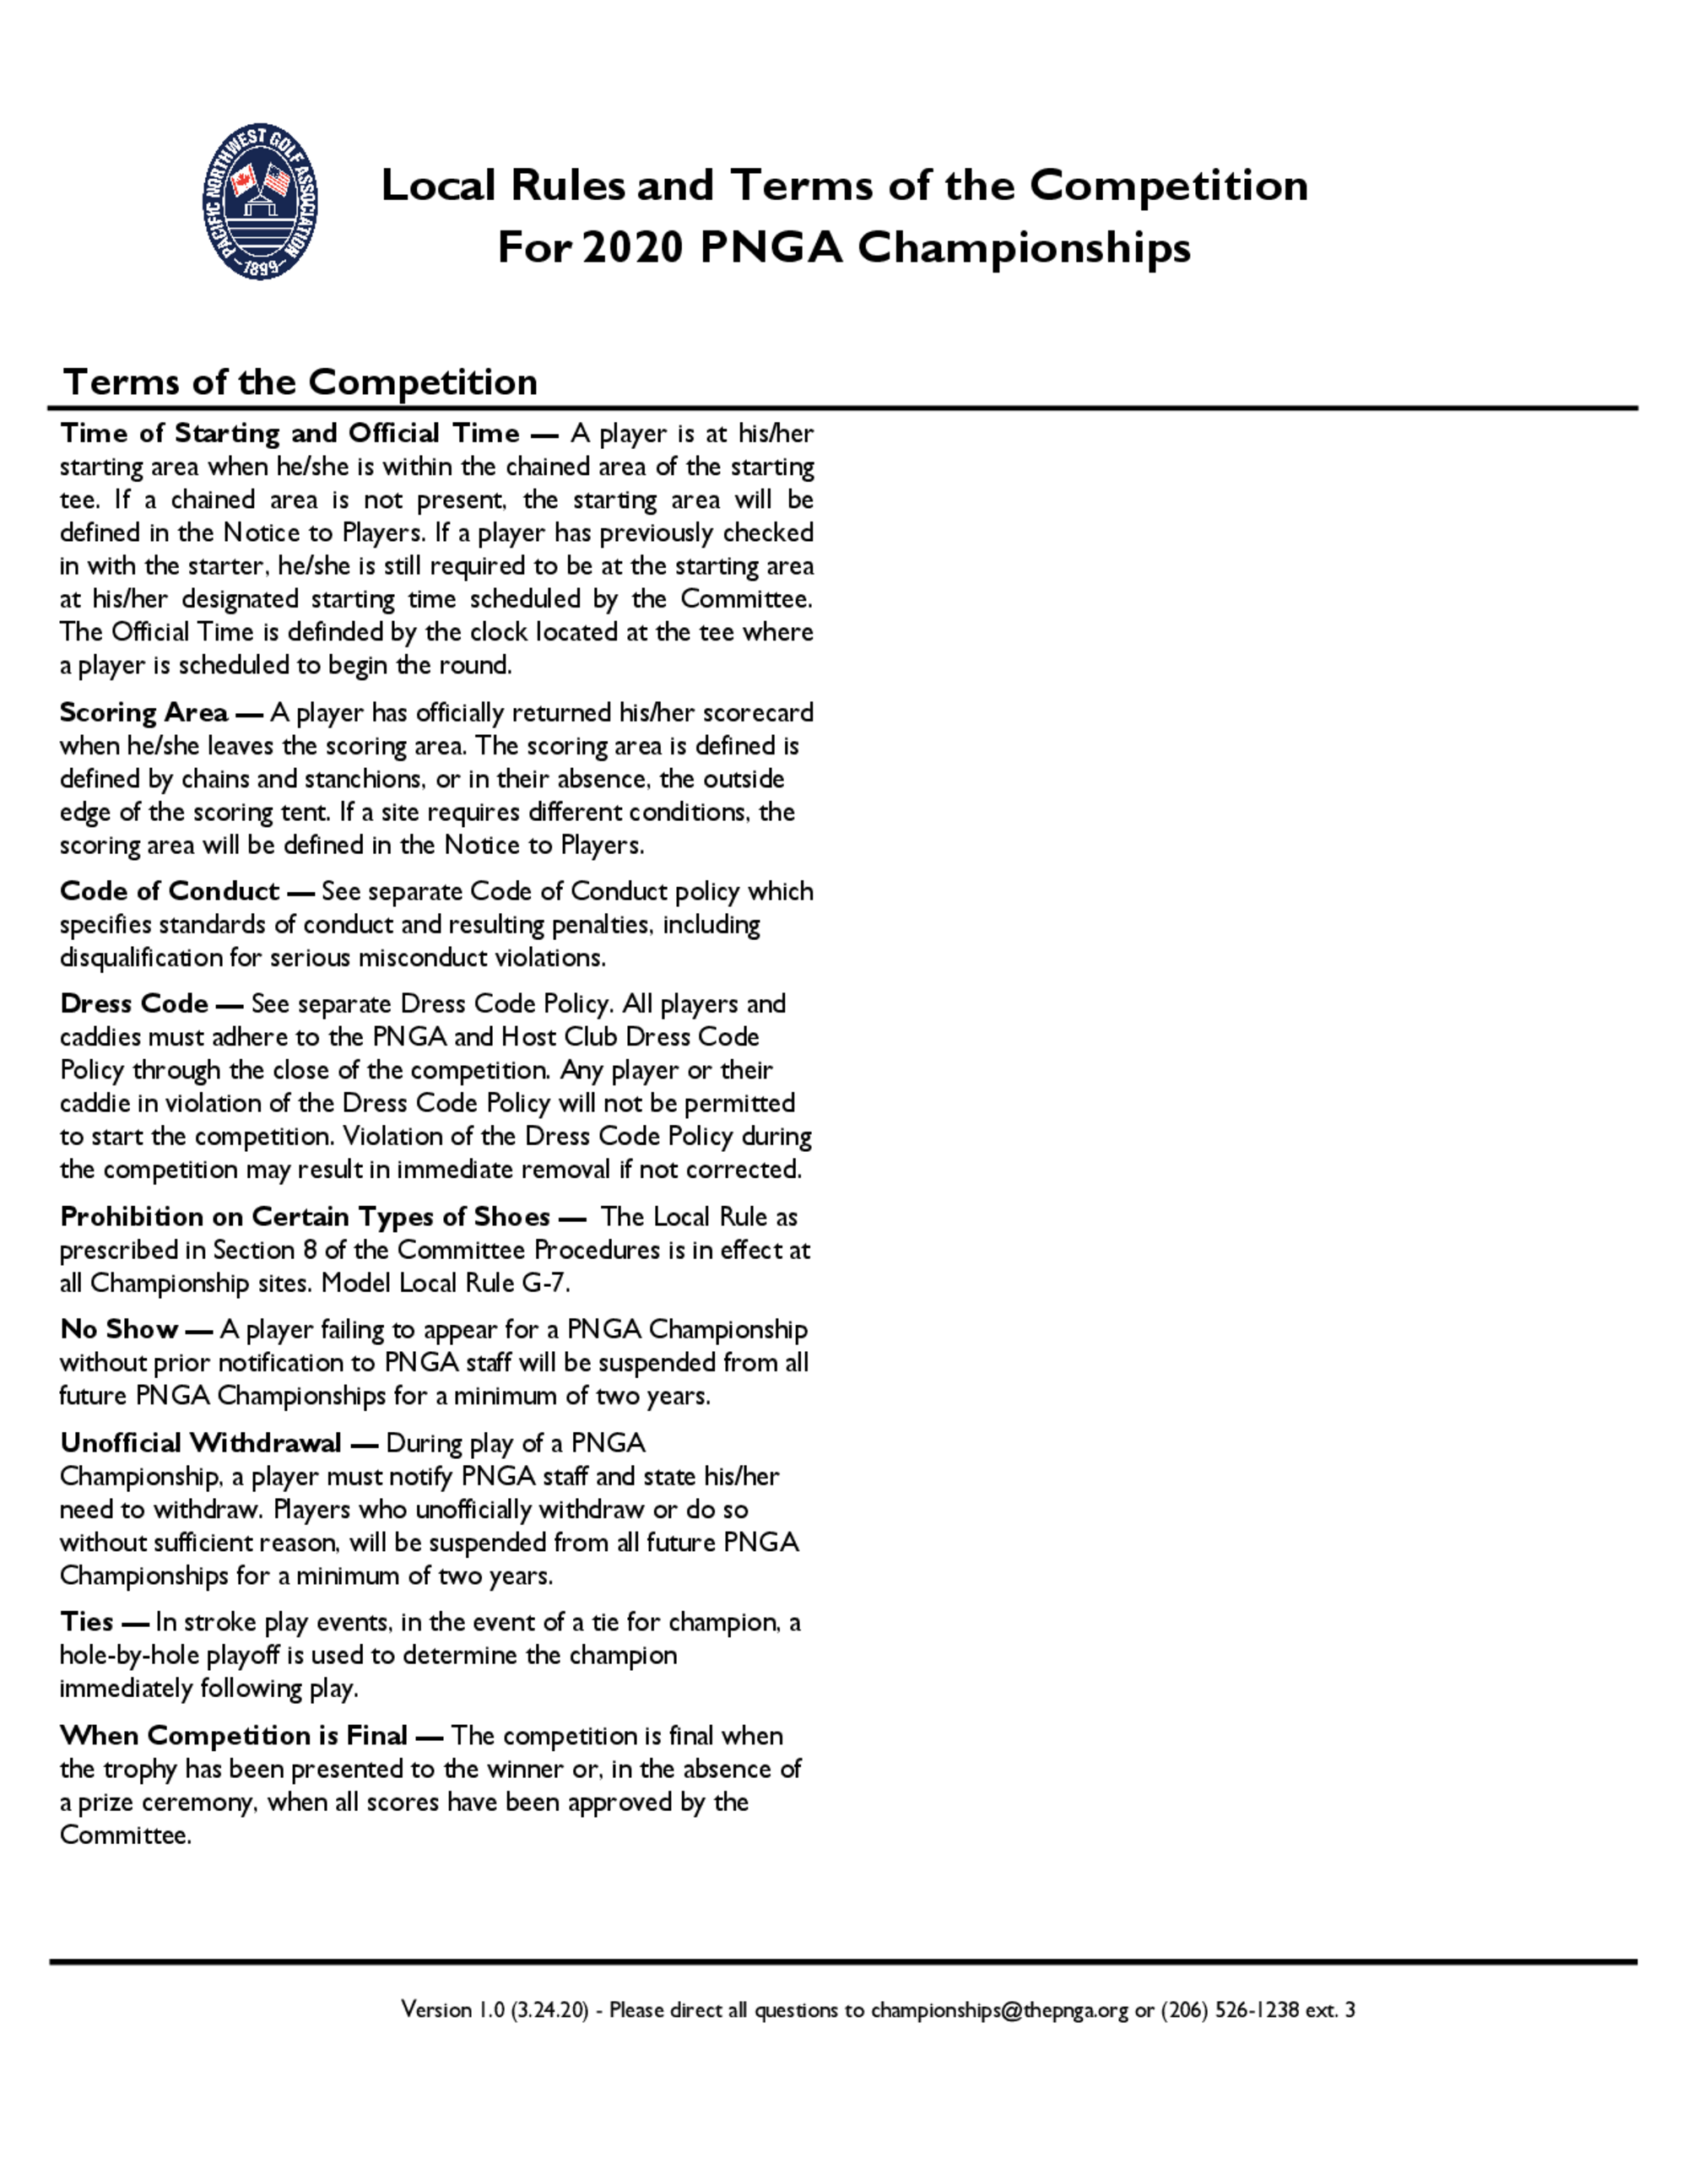 2020 pnga local rules and terms of the competition 2